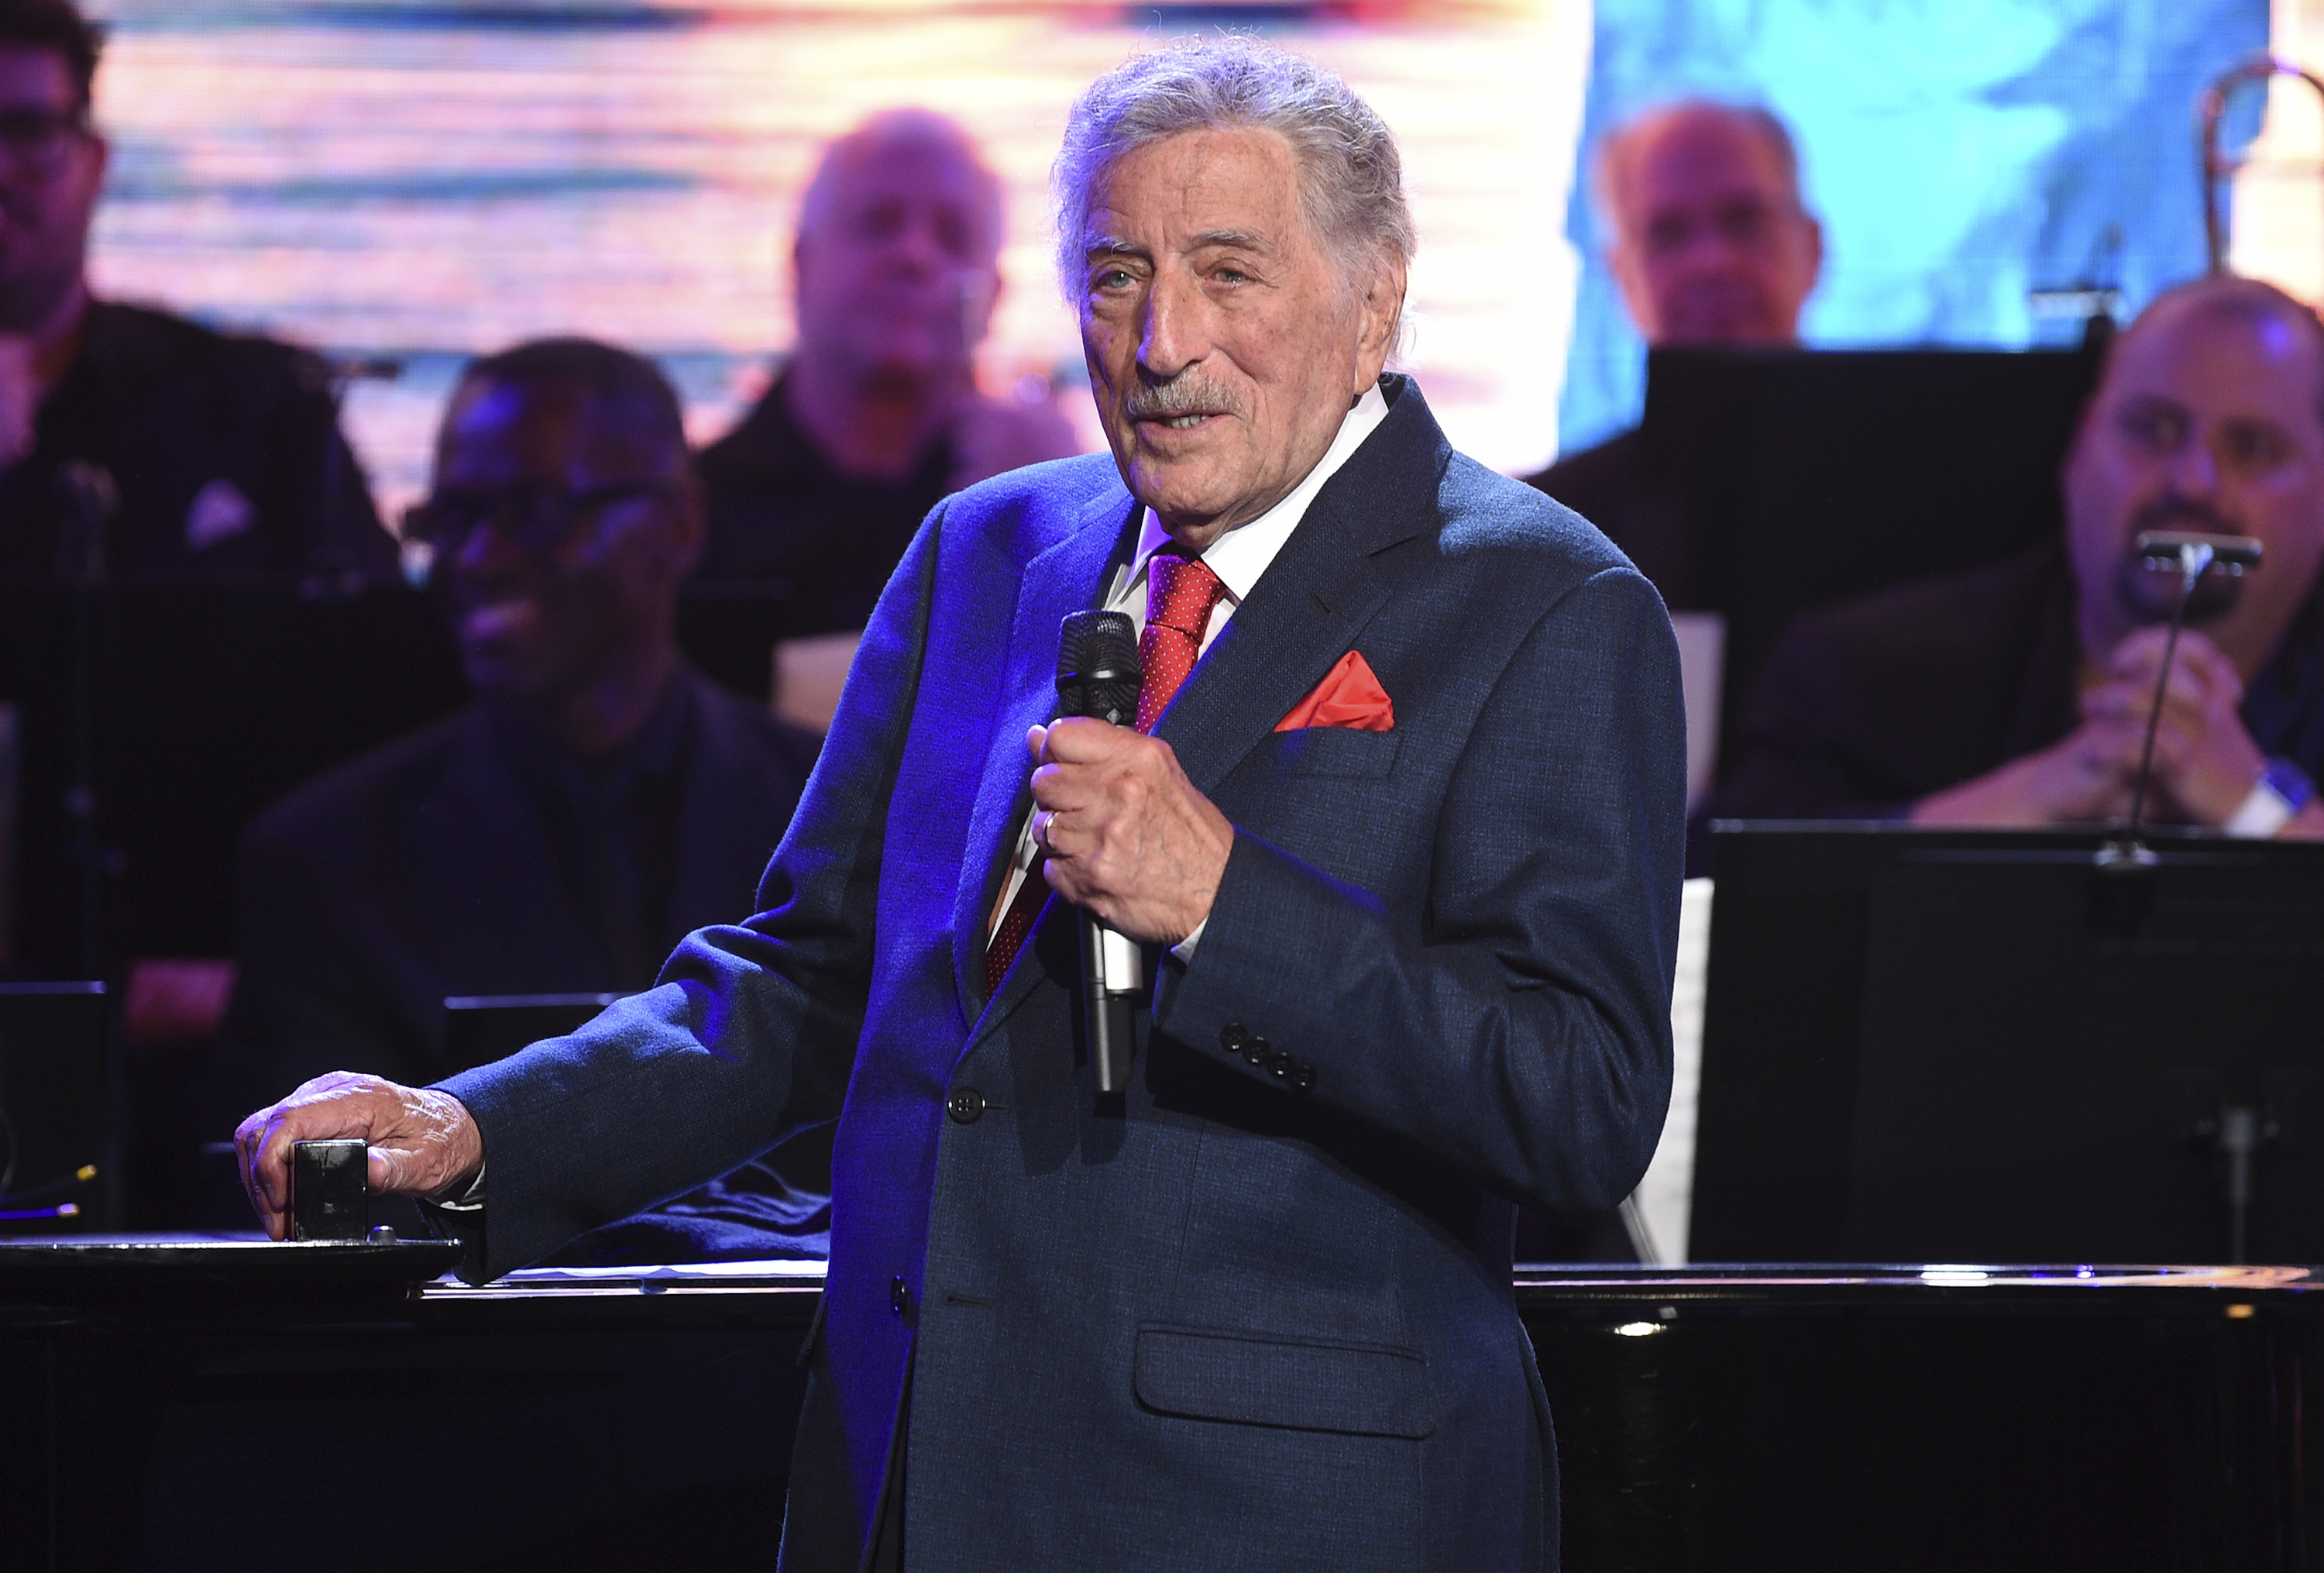 Tony Bennett performs at the Statue of Liberty Museum opening celebration on May 15, 2019, in New York.